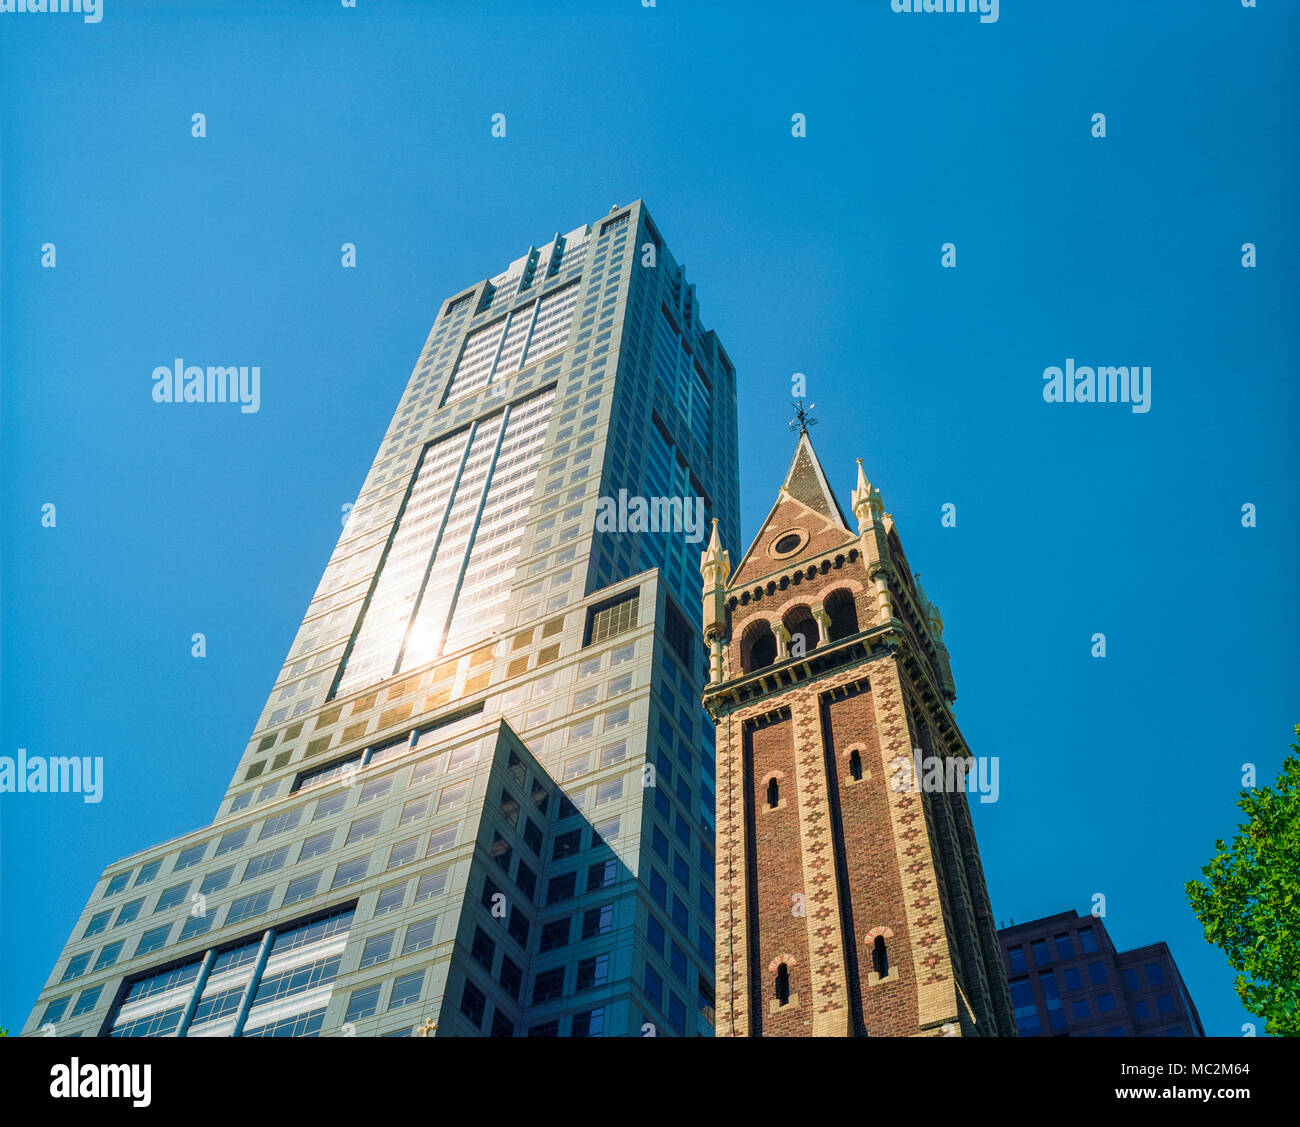 The spire of St Michael's Uniting Church, cnr Russell st and Collins street, in front of the 120 Collins st building, Melbourne, Victoria, Australia. - Stock Image